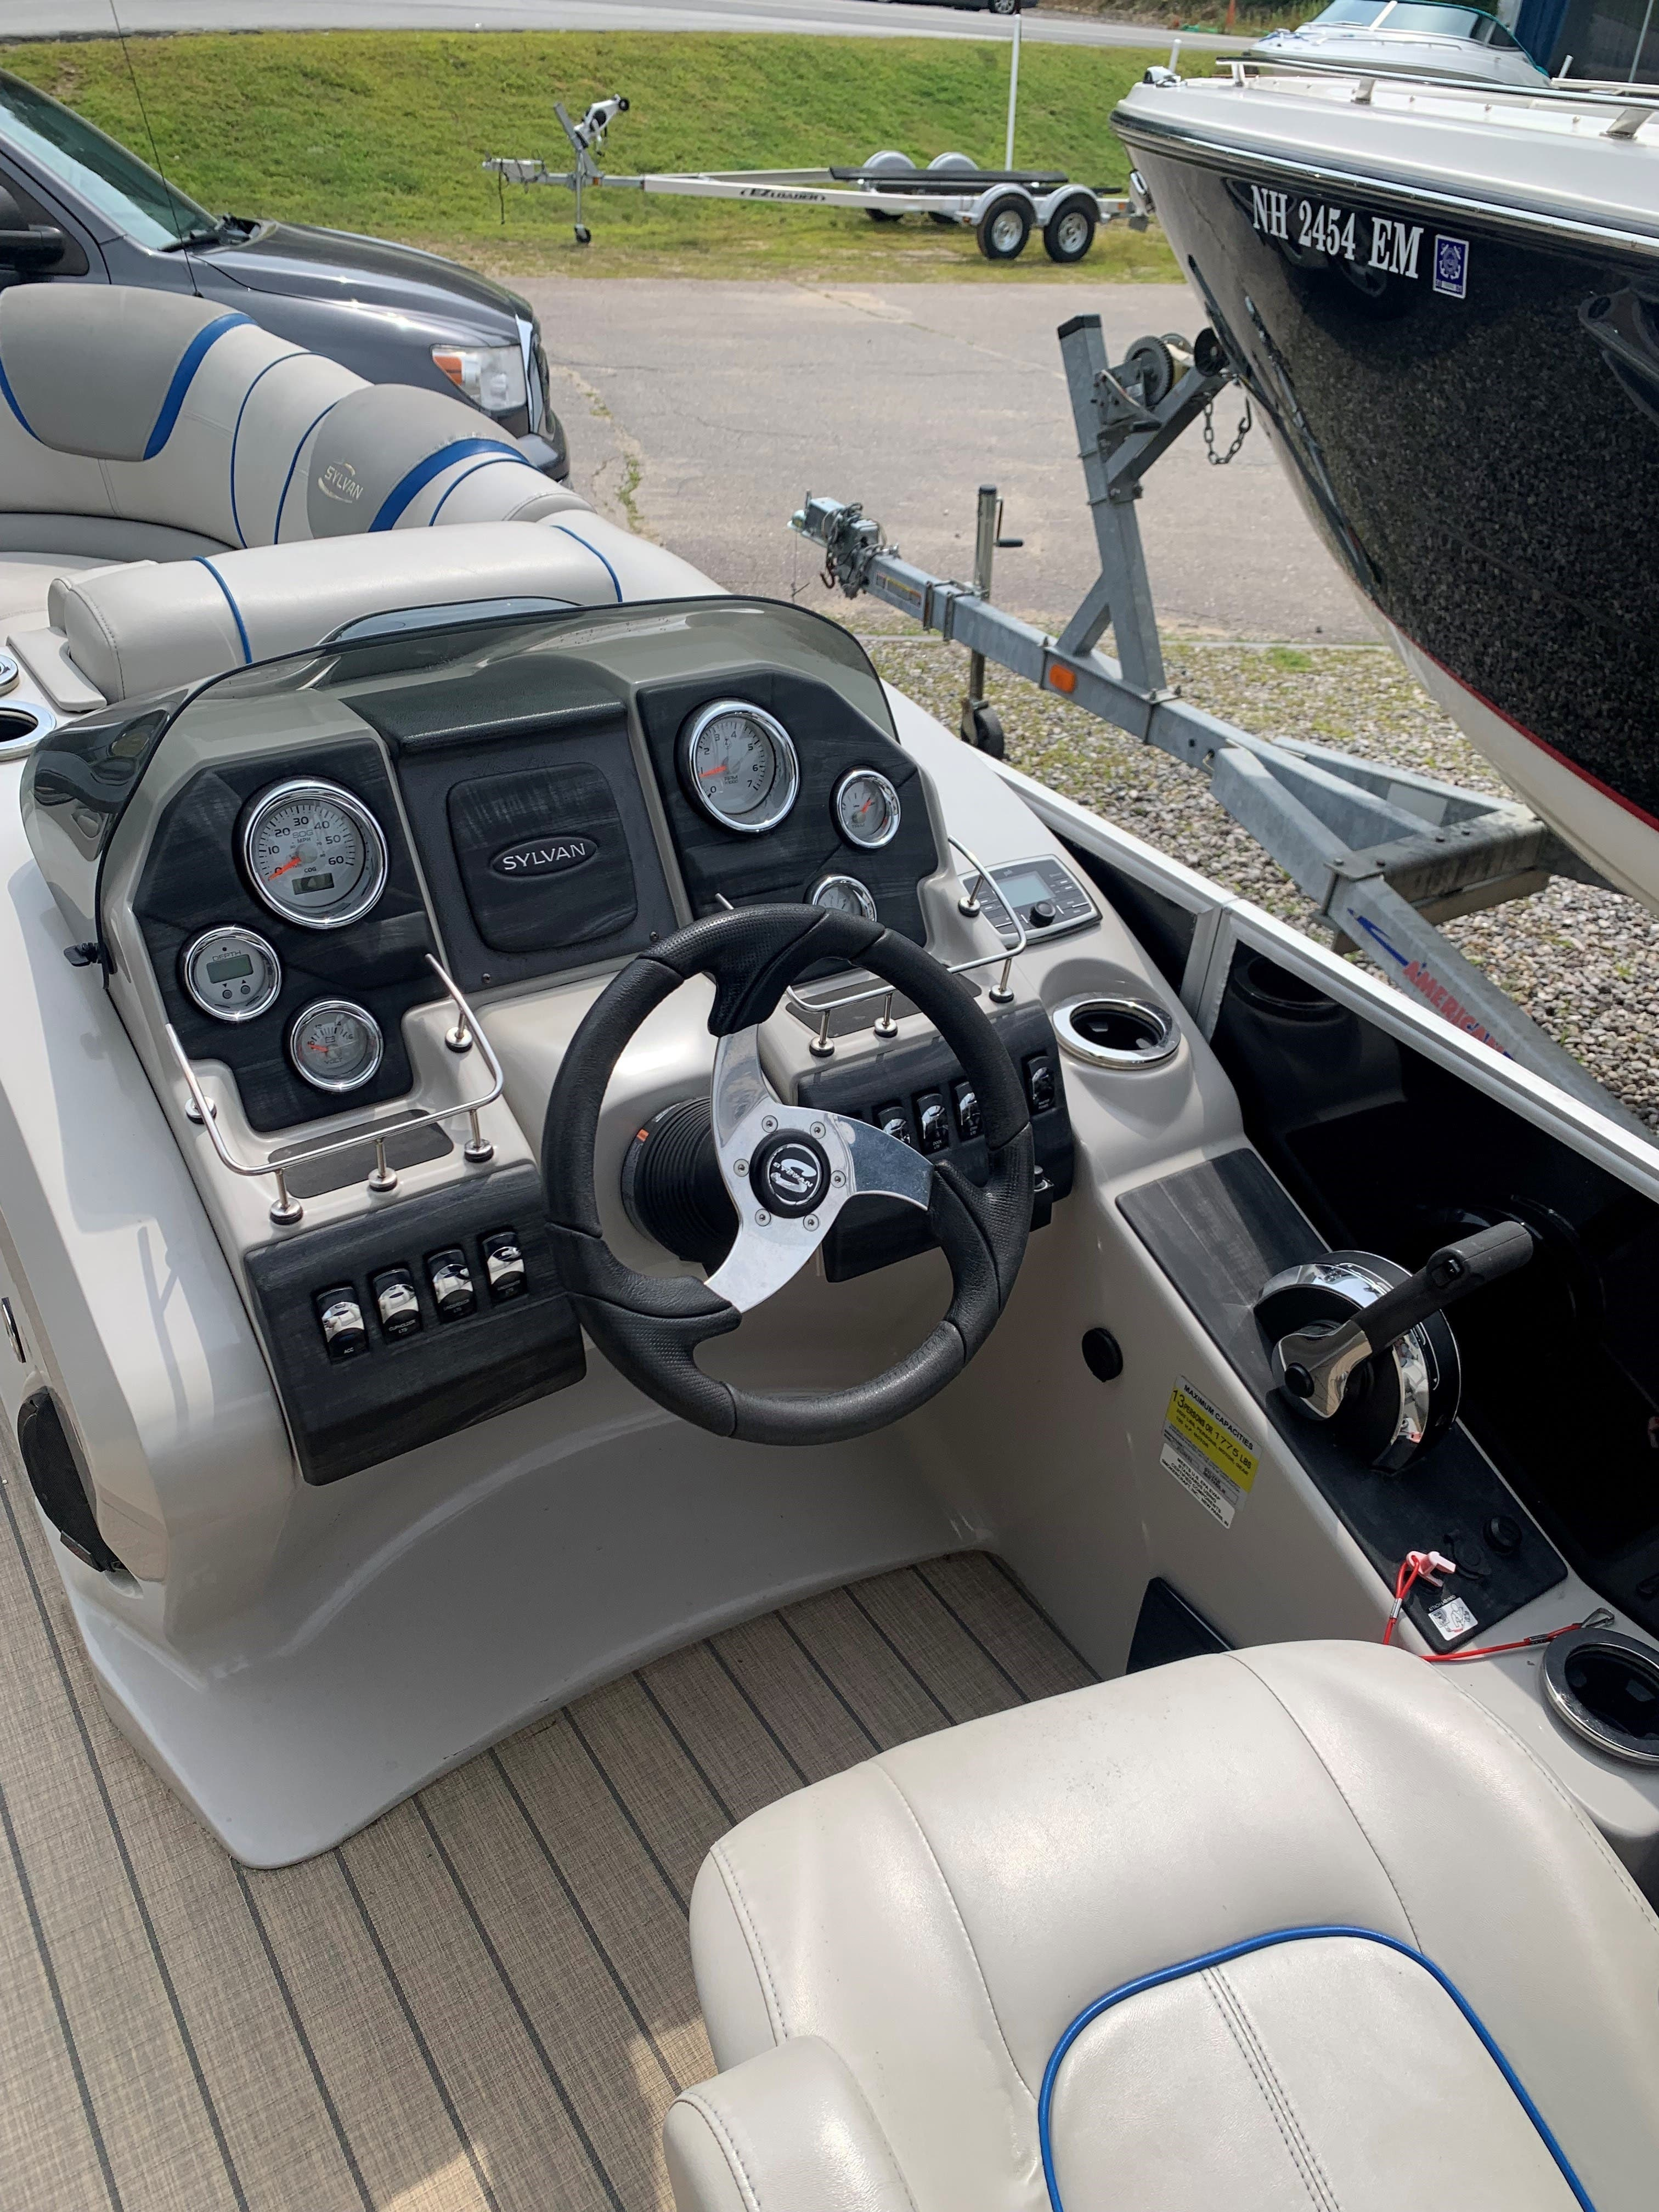 2015 Sylvan boat for sale, model of the boat is S3 & Image # 3 of 8